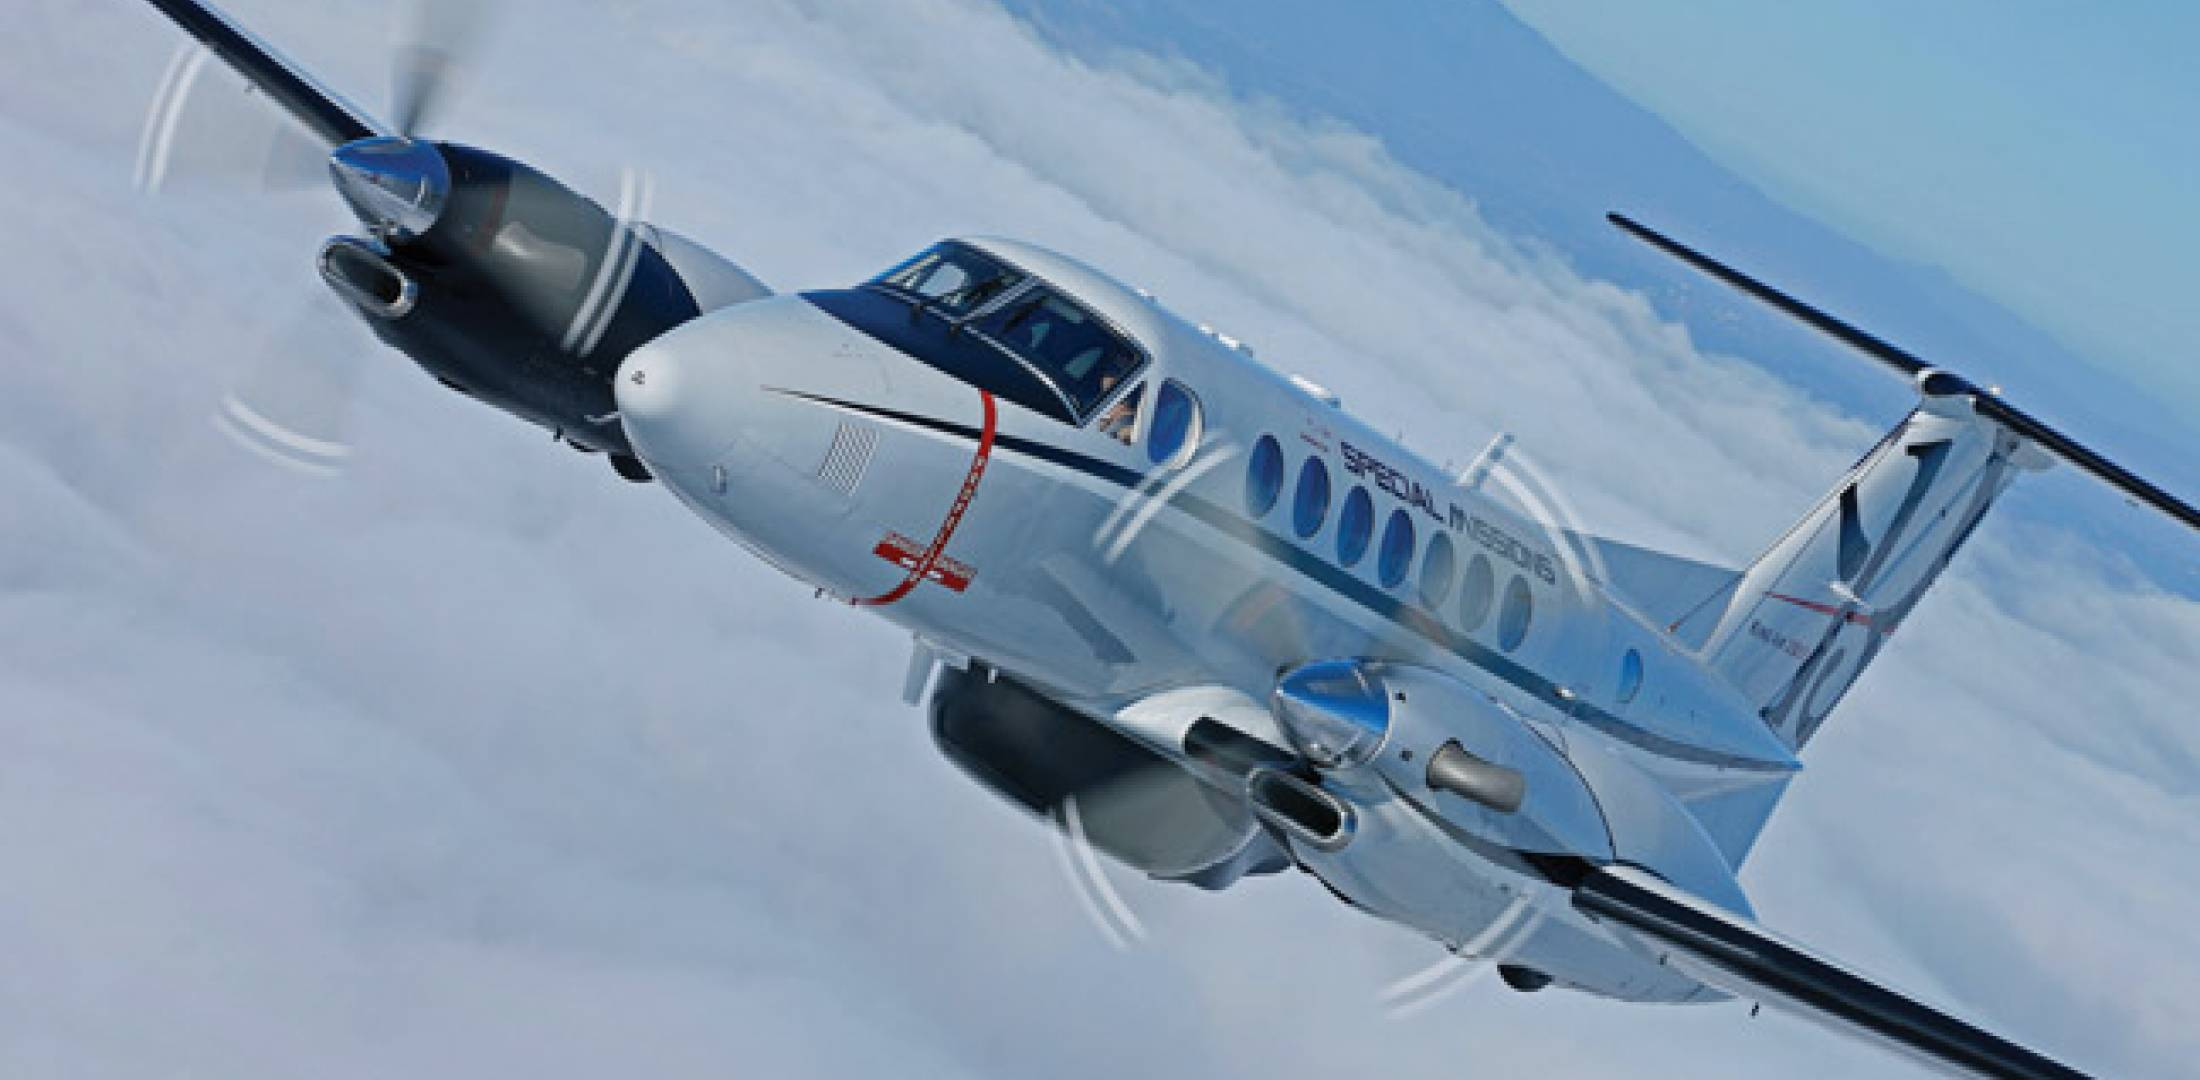 The King Air 350ER (extended range) special-mission variant has an endurance of seven to 10 hours, depending on the configuration.